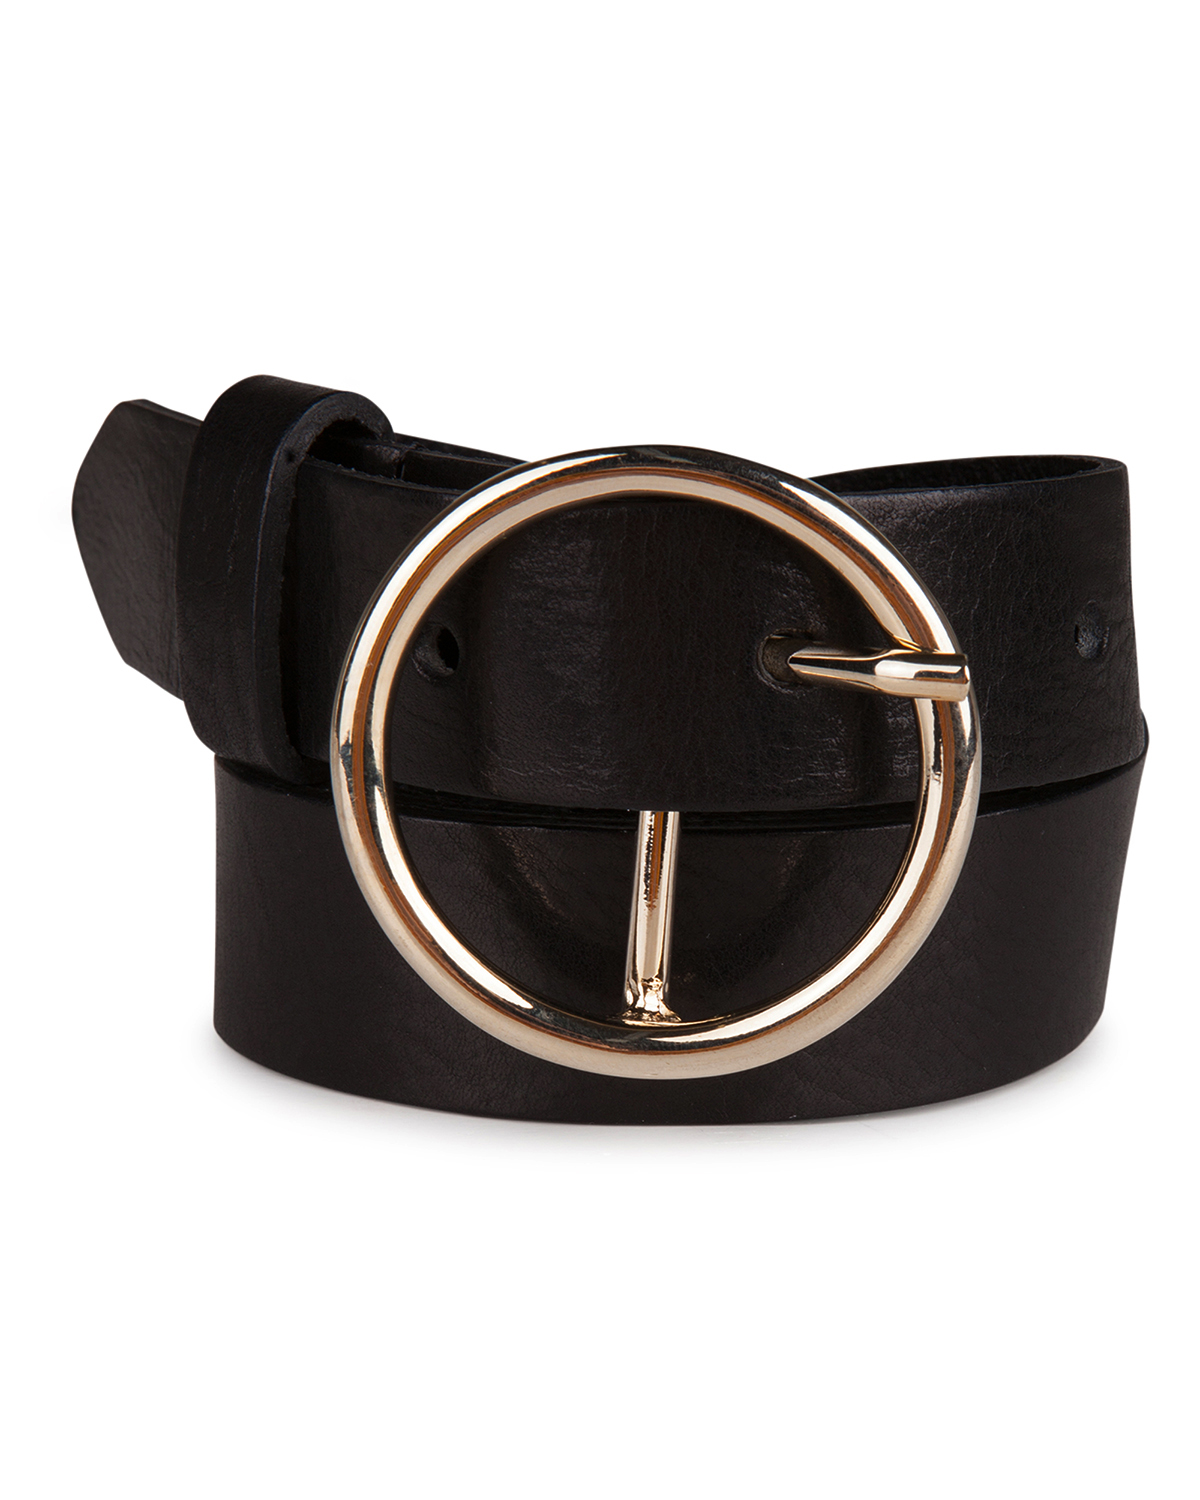 CEINTURE DE CUIR FEMME   86195591 - WE Fashion b30ef144f2e